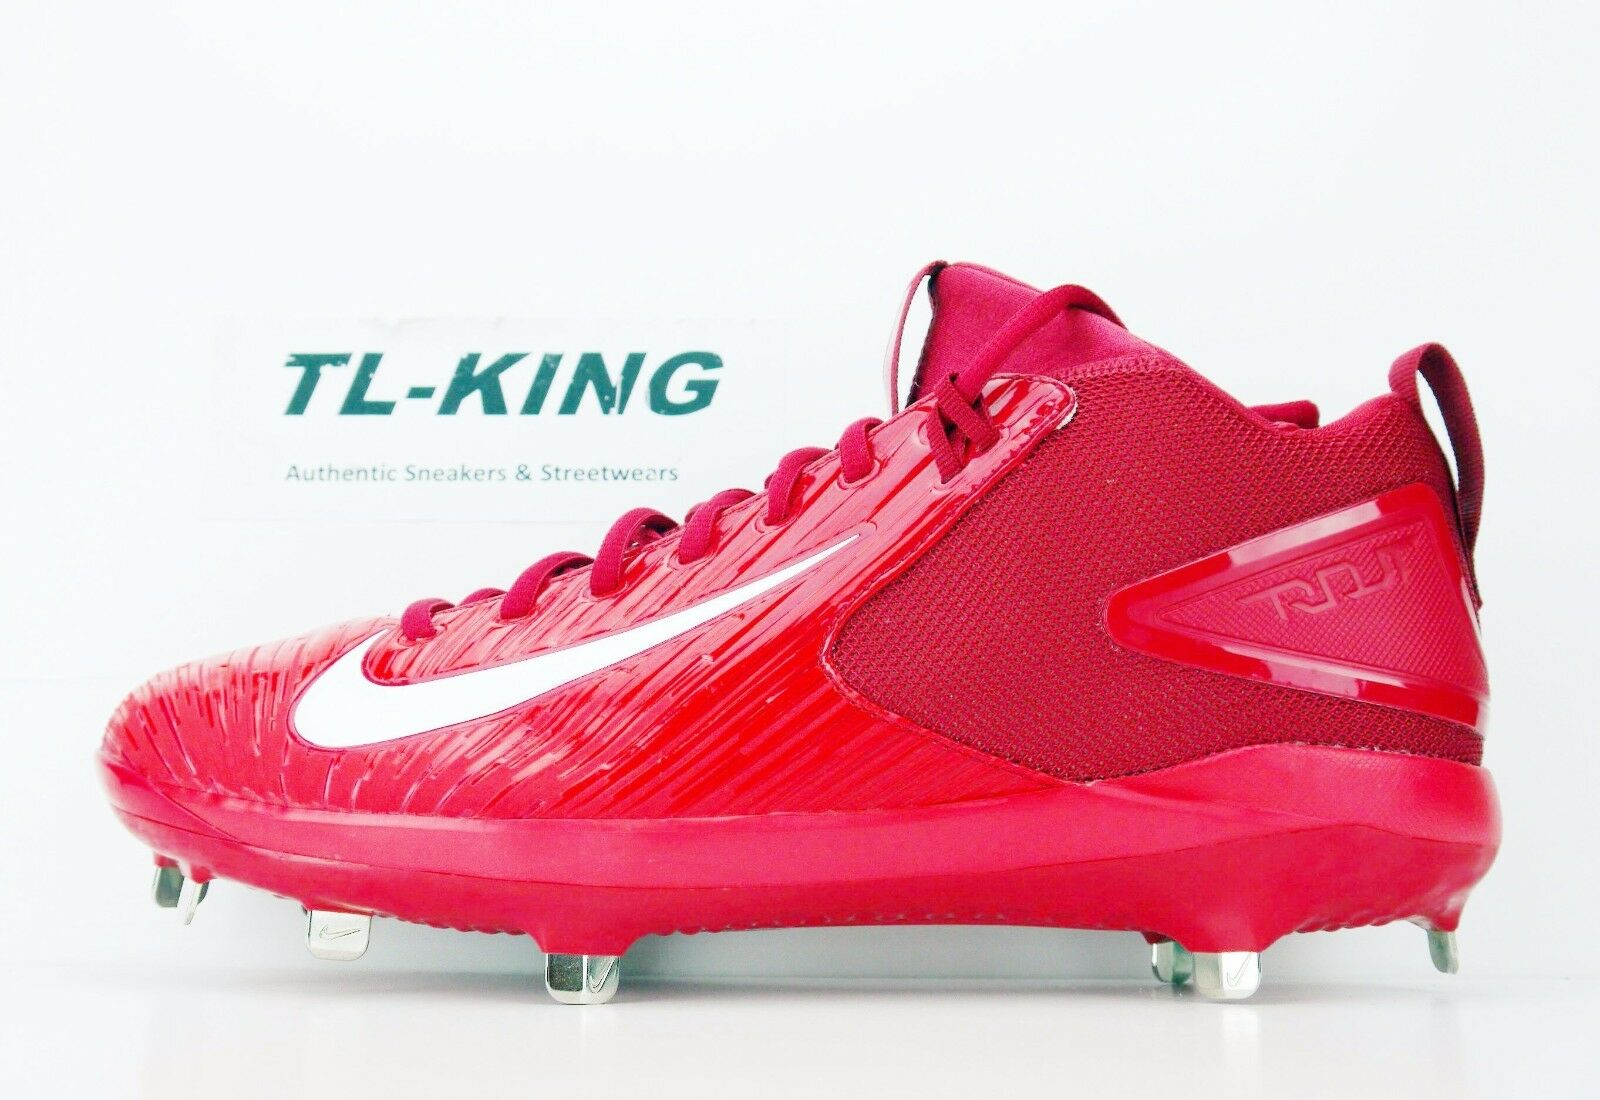 Nike Trout 3 Pro Baseball Cleats 856498 667 Msrp Price reduction The latest discount shoes for men and women